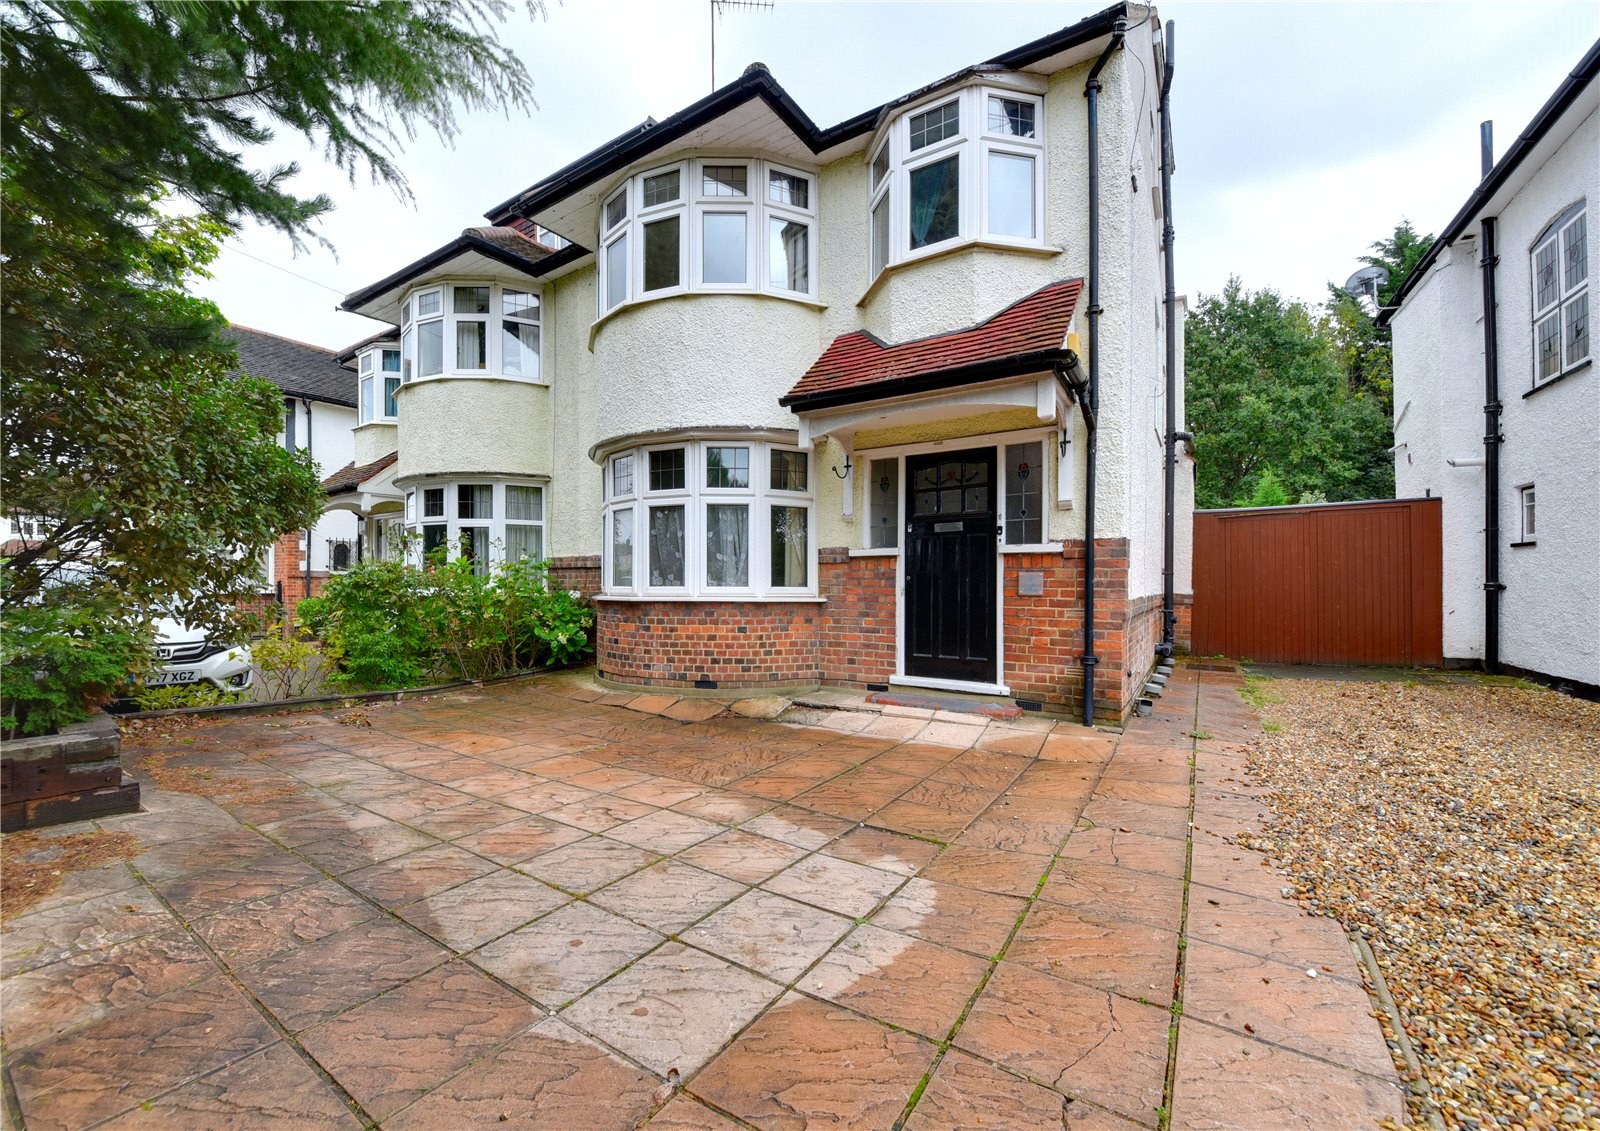 4 bed house to rent in Longland Drive, Totteridge  - Property Image 2